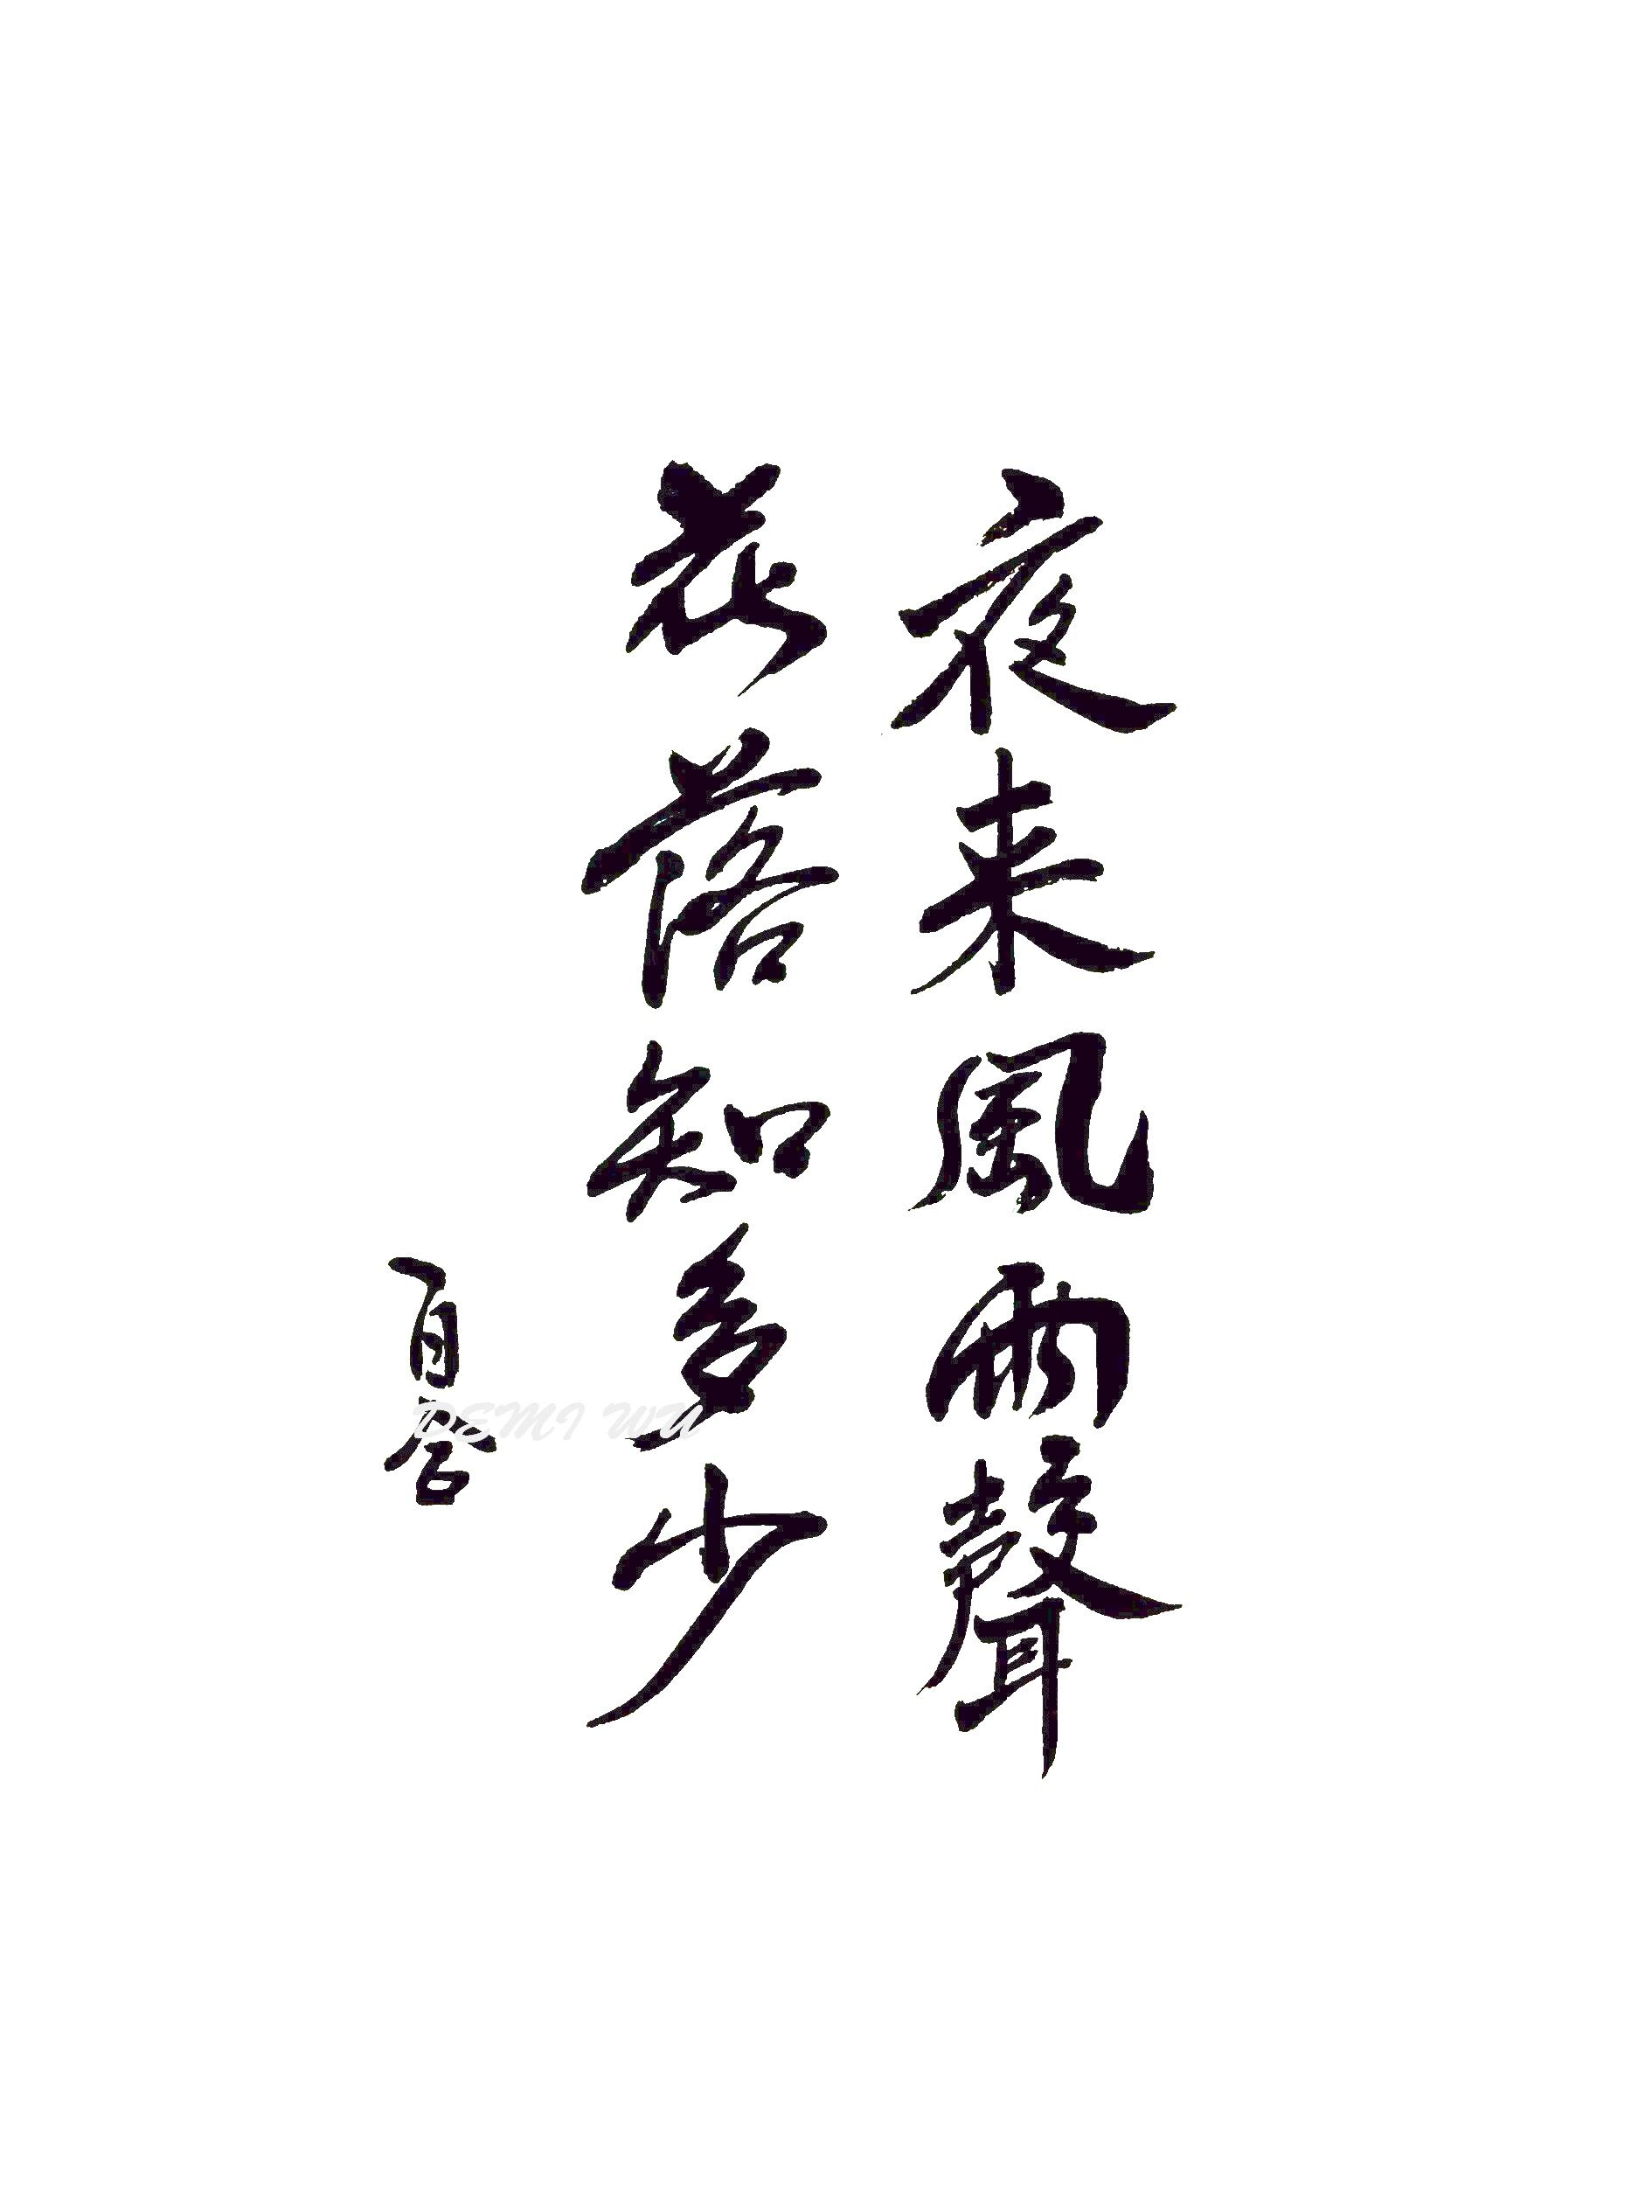 writing chinese letters Use these pages of chinese character cards in lots of different ways for chinese new year or when you are learning about china: print onto white or coloured paper or card to make decorative posters for the classroom walls.